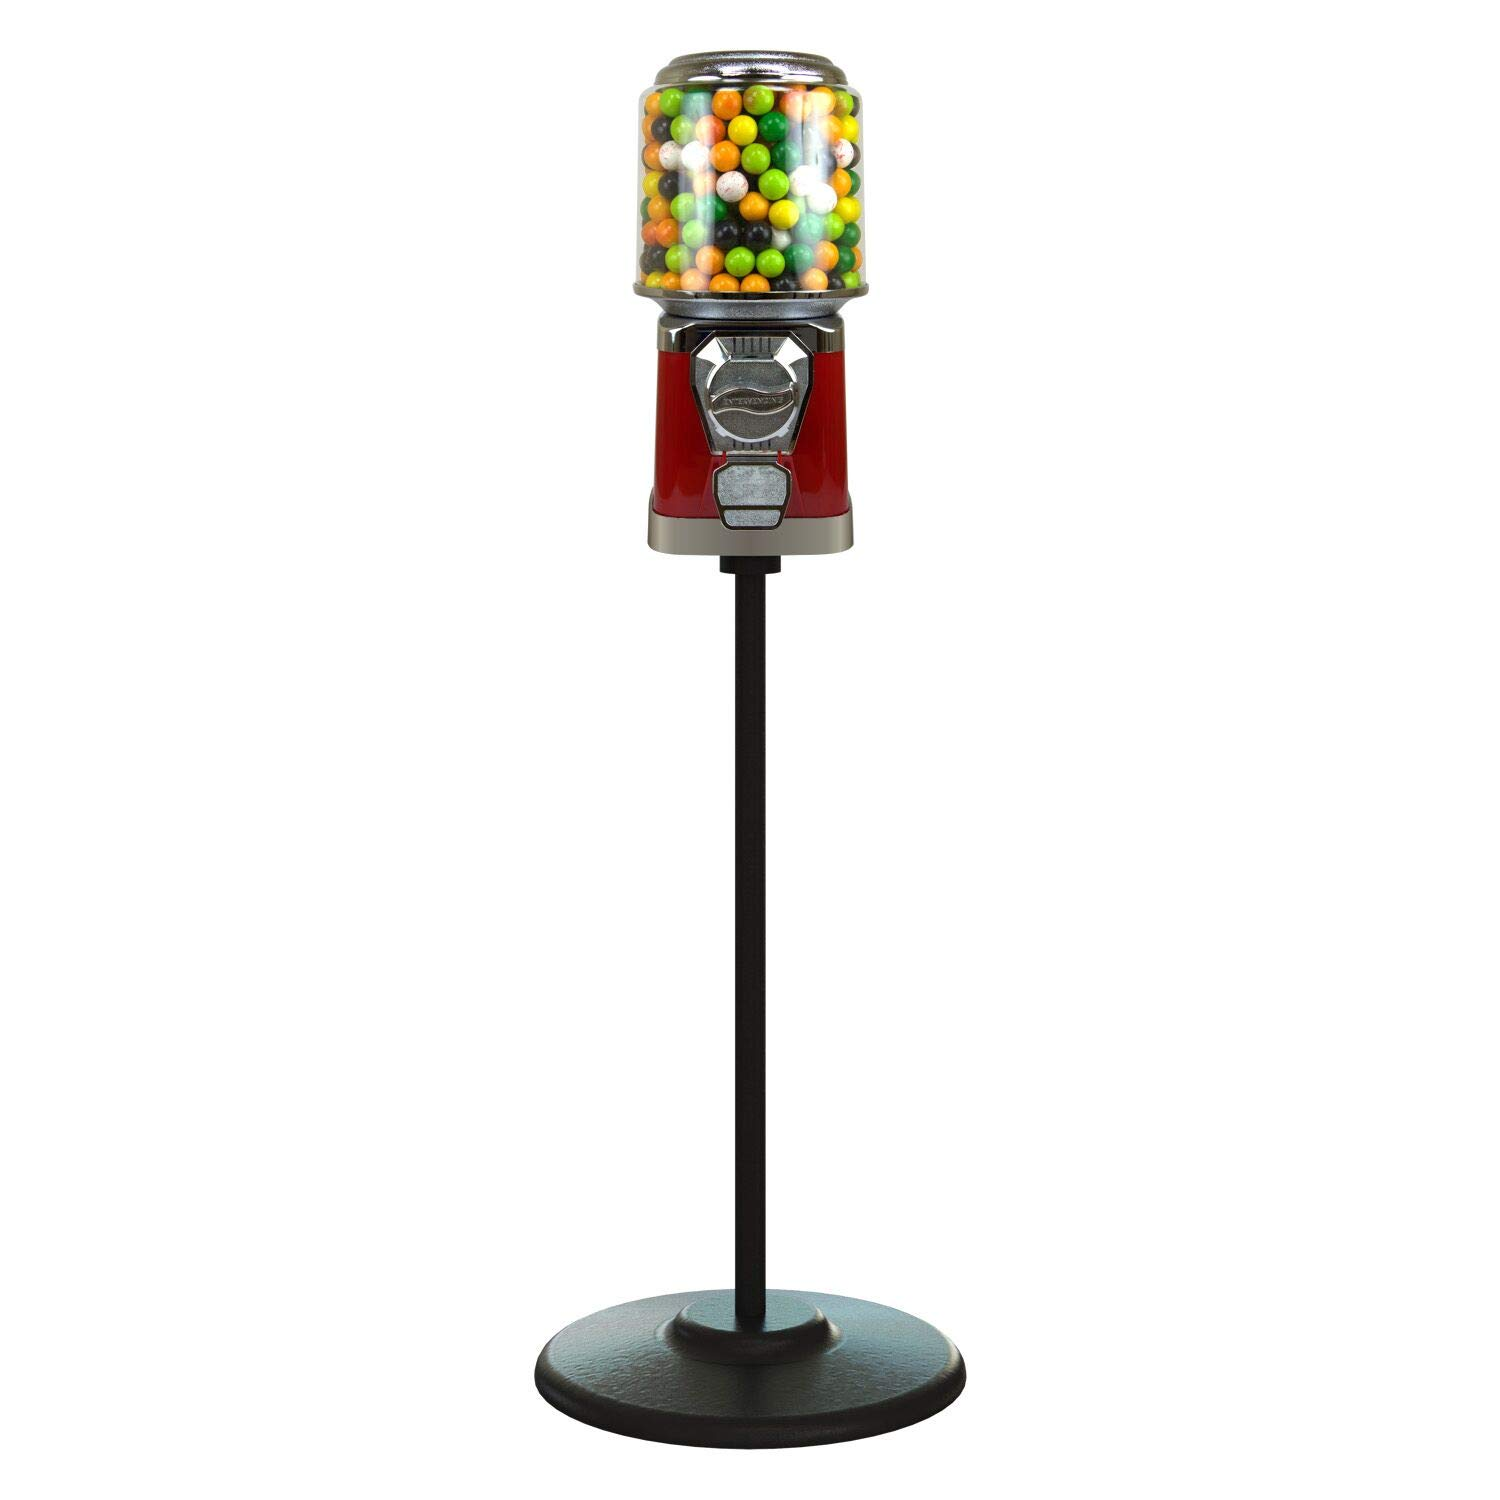 Gumball Machine with Stand - Red Home Vending Machine - Gum Ball Machine with Cylinder Bank - Bubble Gum Machine for Kids - Home Vending Machine - Coin Gumball Machine - Bubblegum Machine